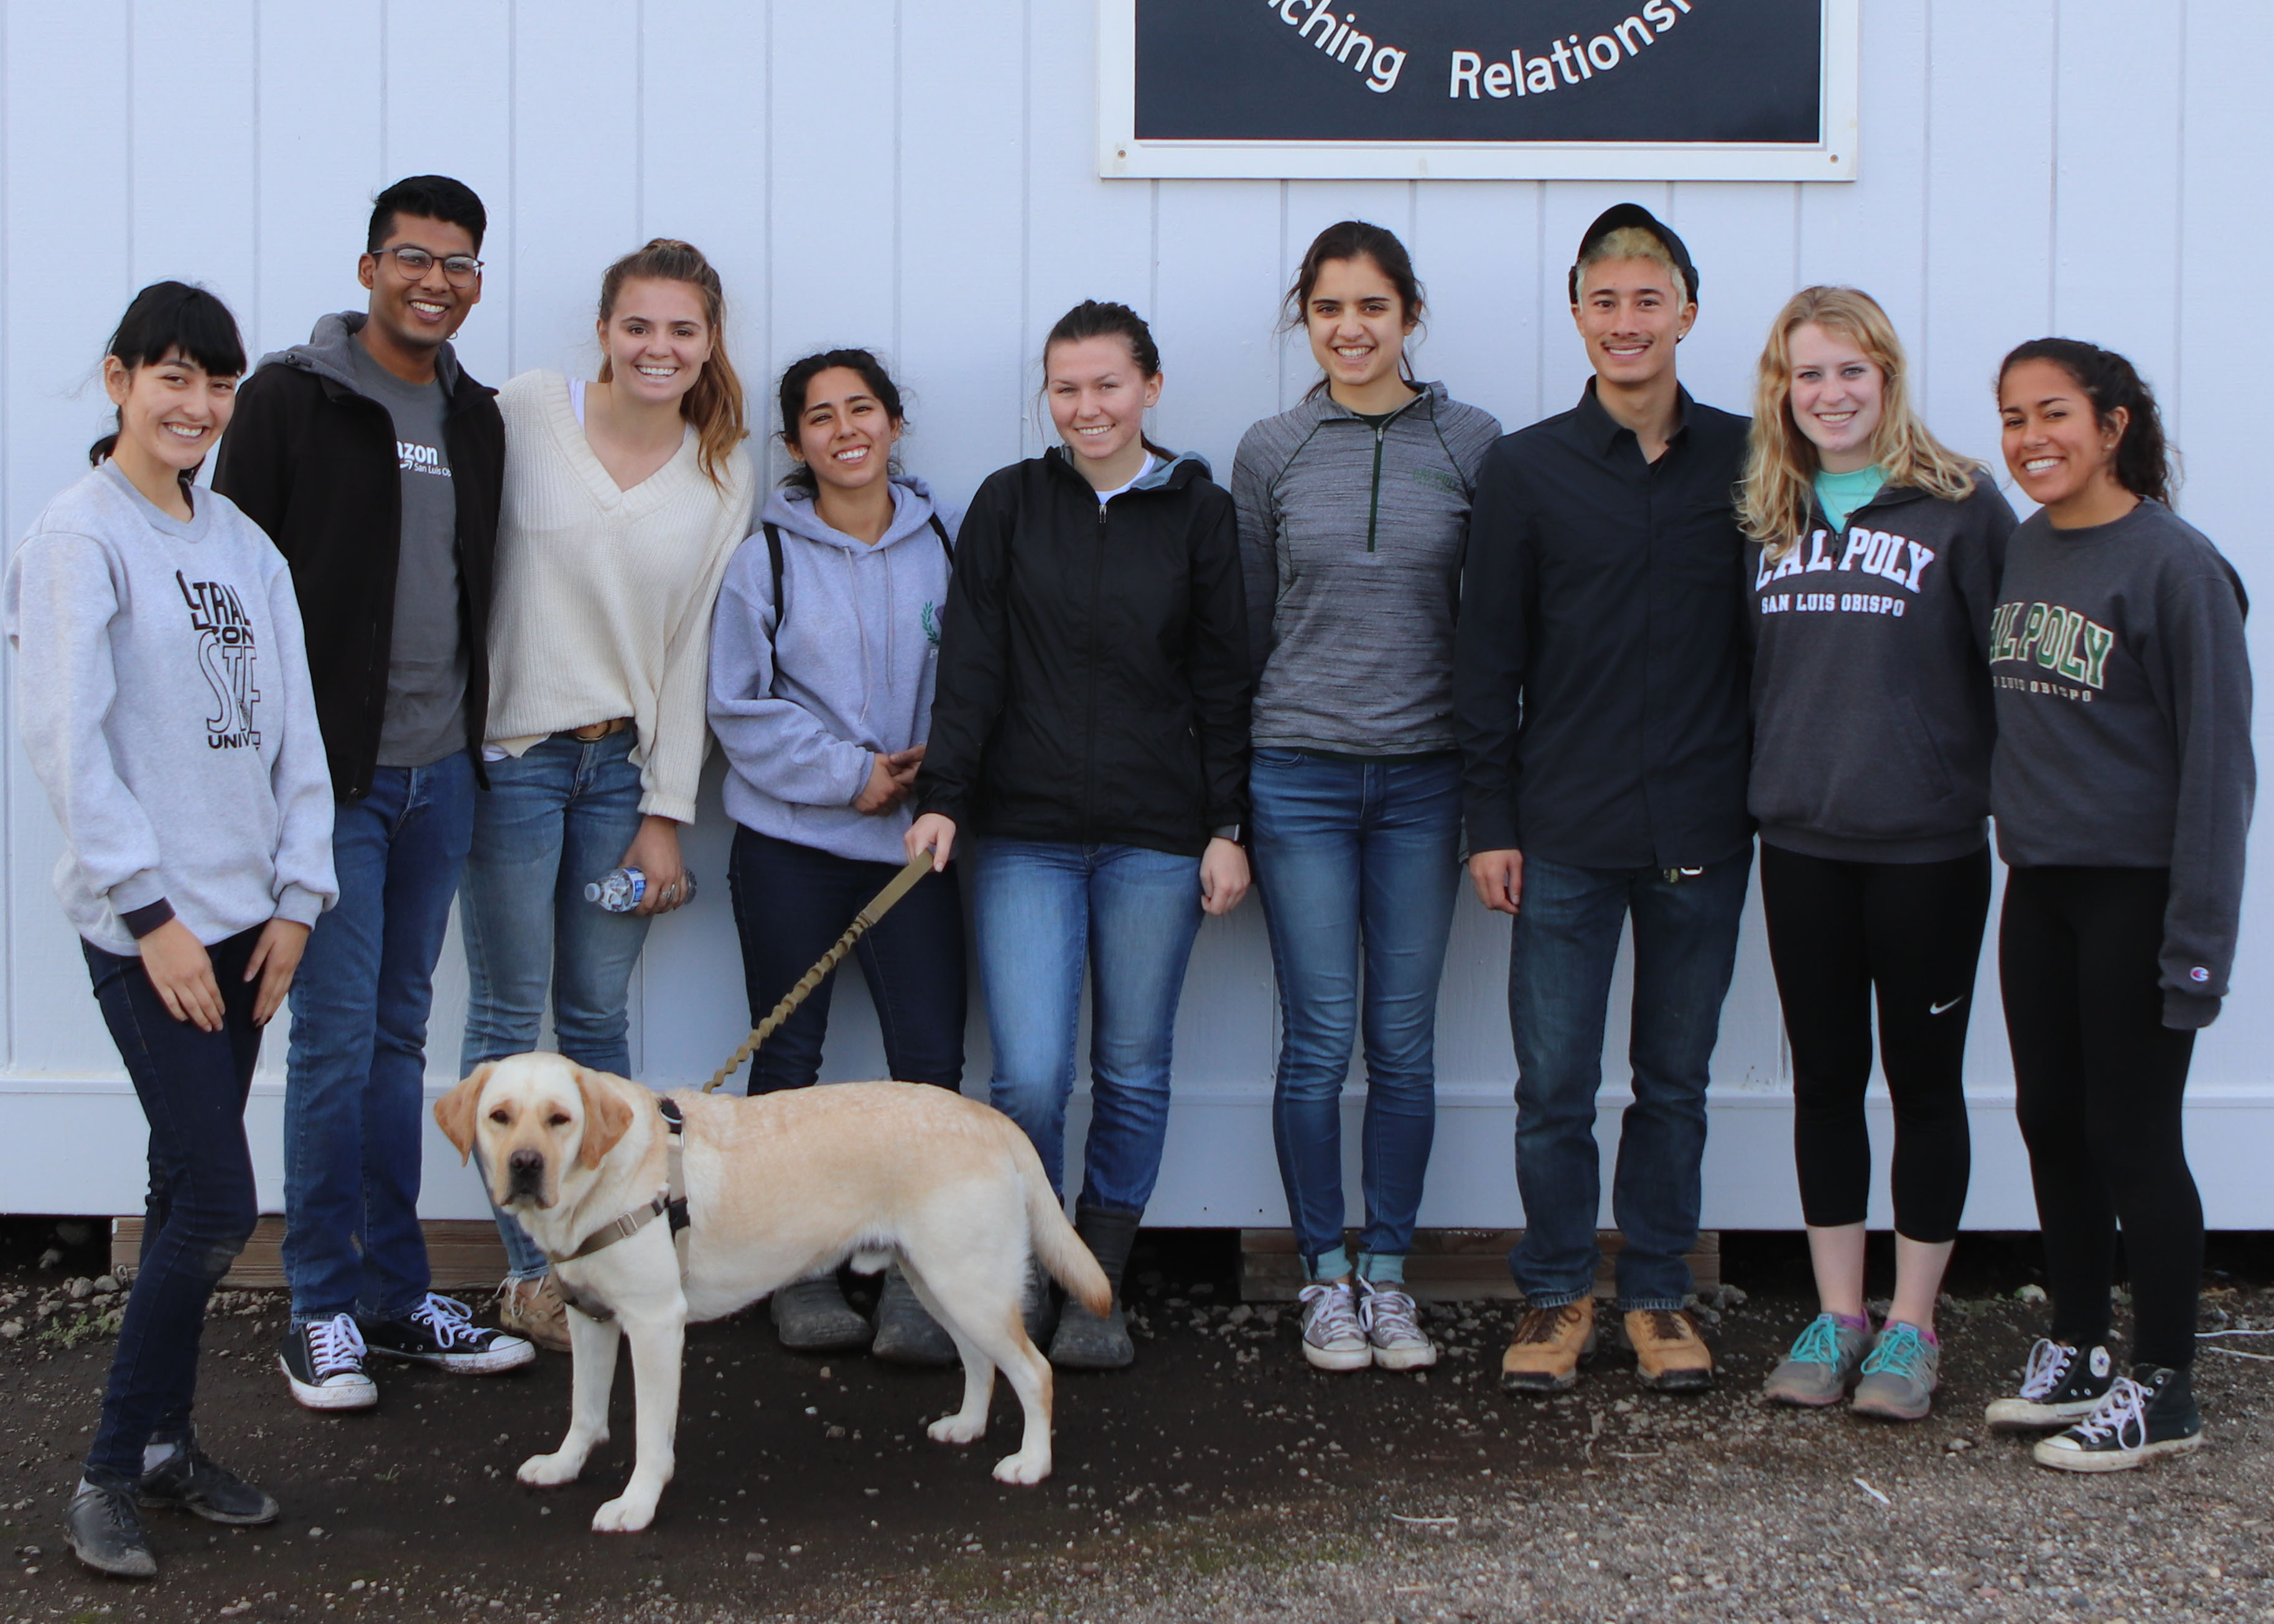 Thank you to the Cal Poly Make a Difference Month Student Volunteers!